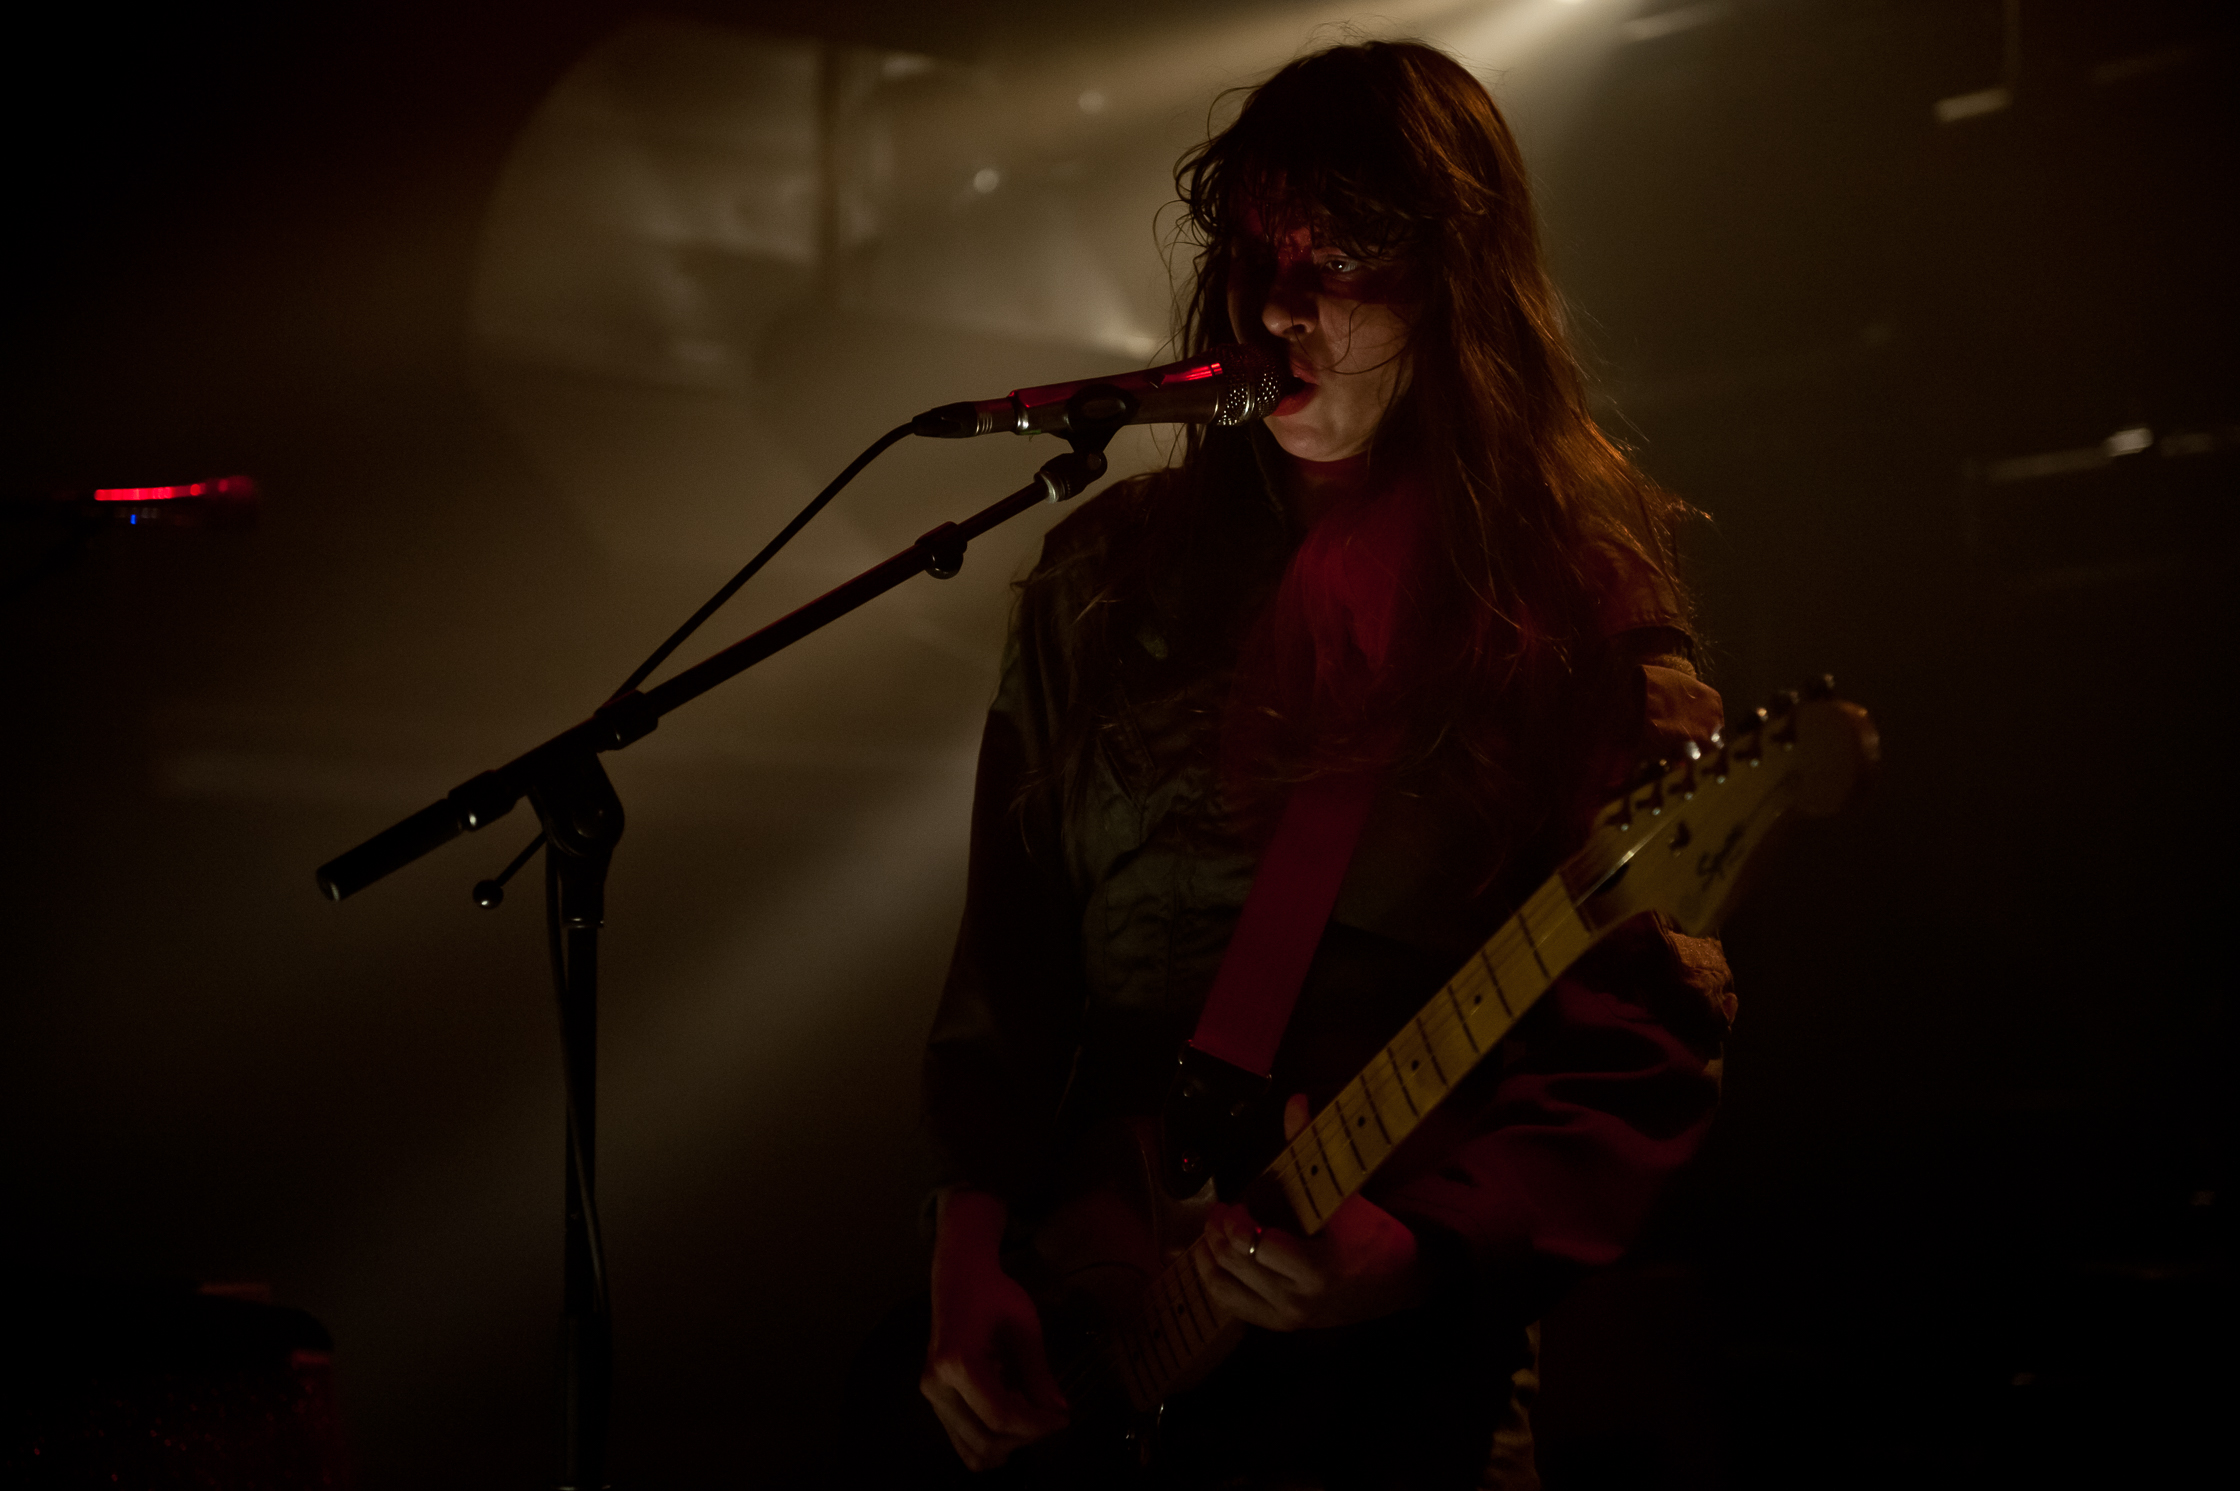 2016_09_23_arteather_lebutcherettes-1274